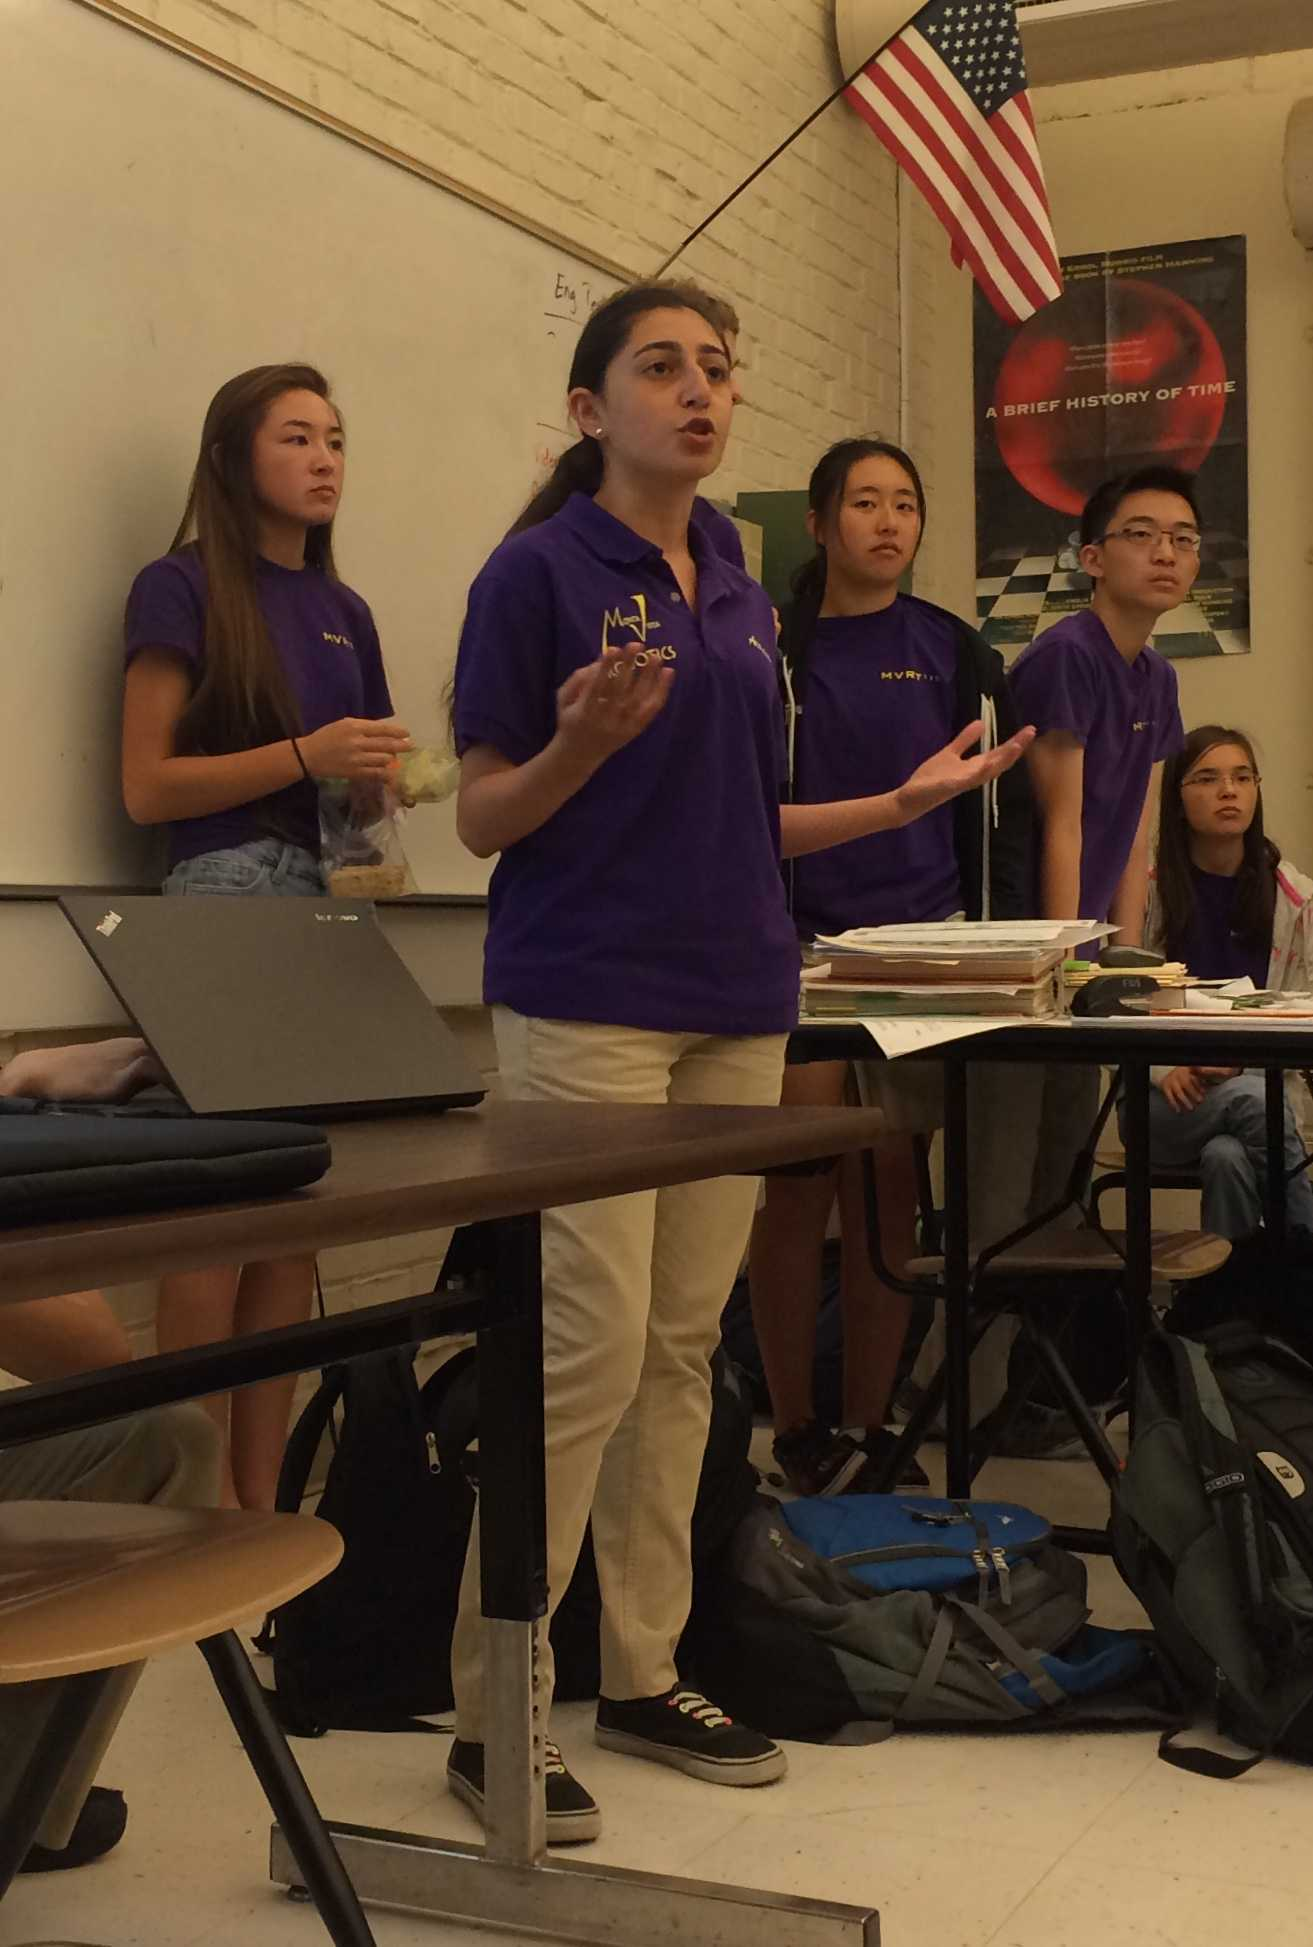 MVHS Robotics president senior Archana Kikla begins a presentation at the Robotics interest meeting at lunch on Sept. 18 in room F108. Kikla presented the team's logistical framework as well as its mission and competitions. Photo by Pranav Parthasarathy.